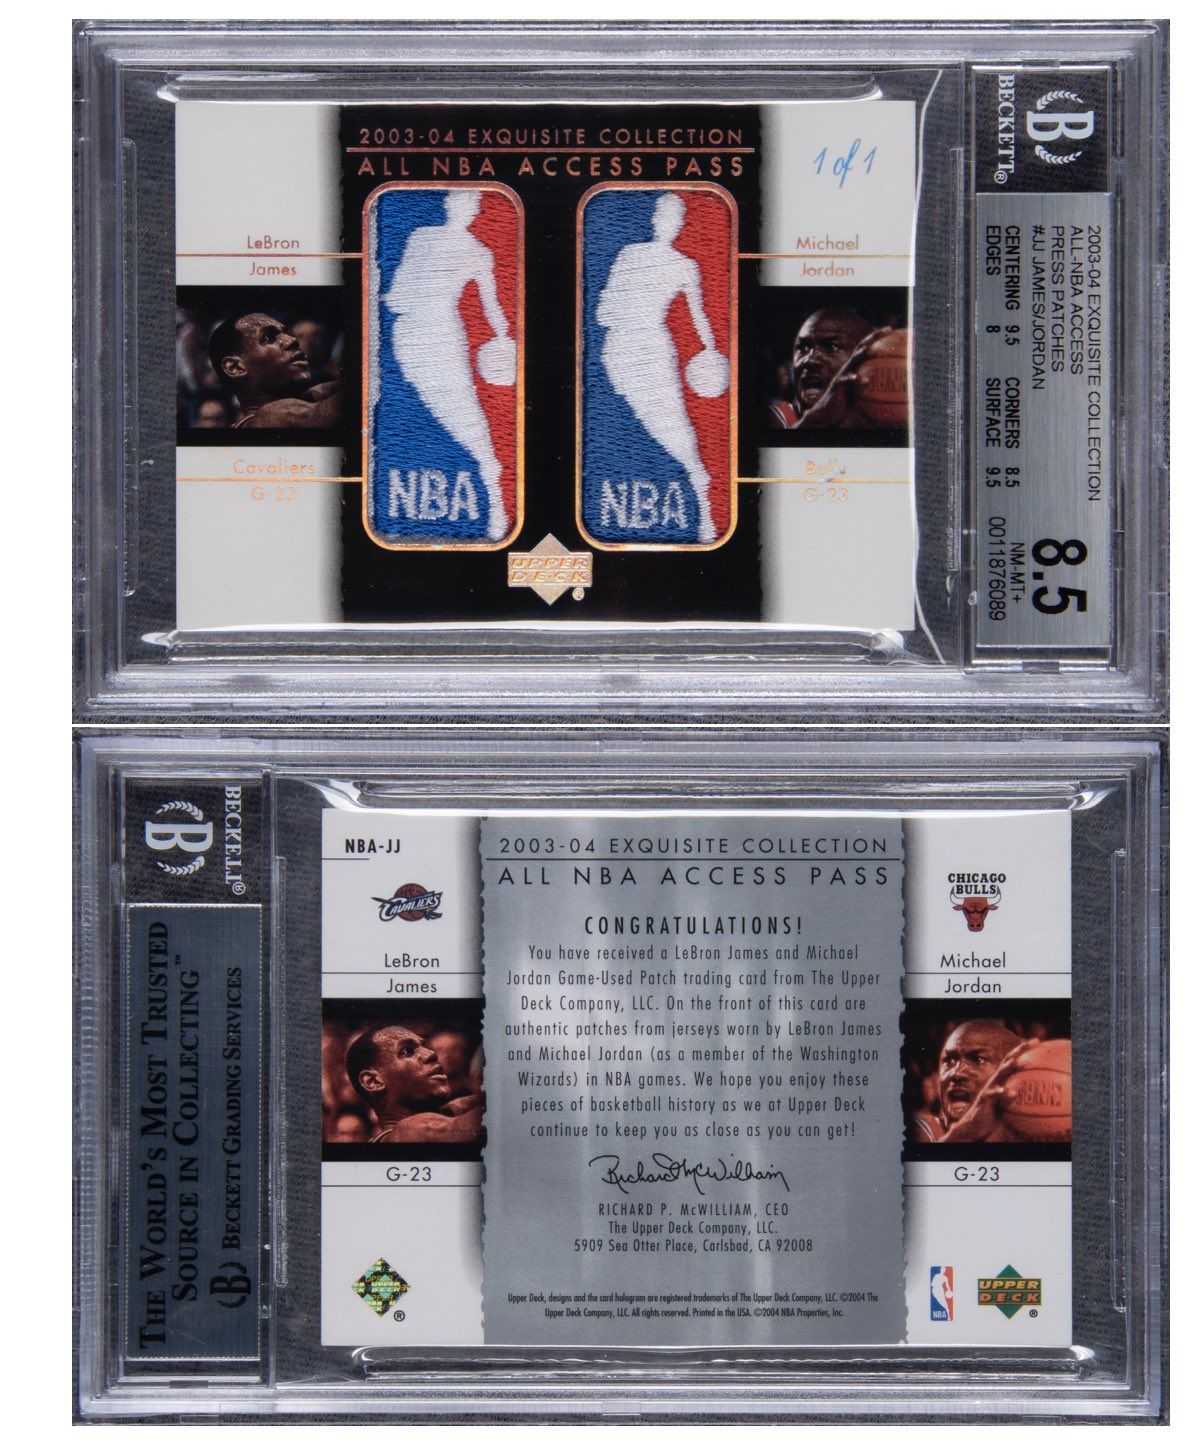 A rare Lebron James, Michael Jordan card sold for $900,000 at auction